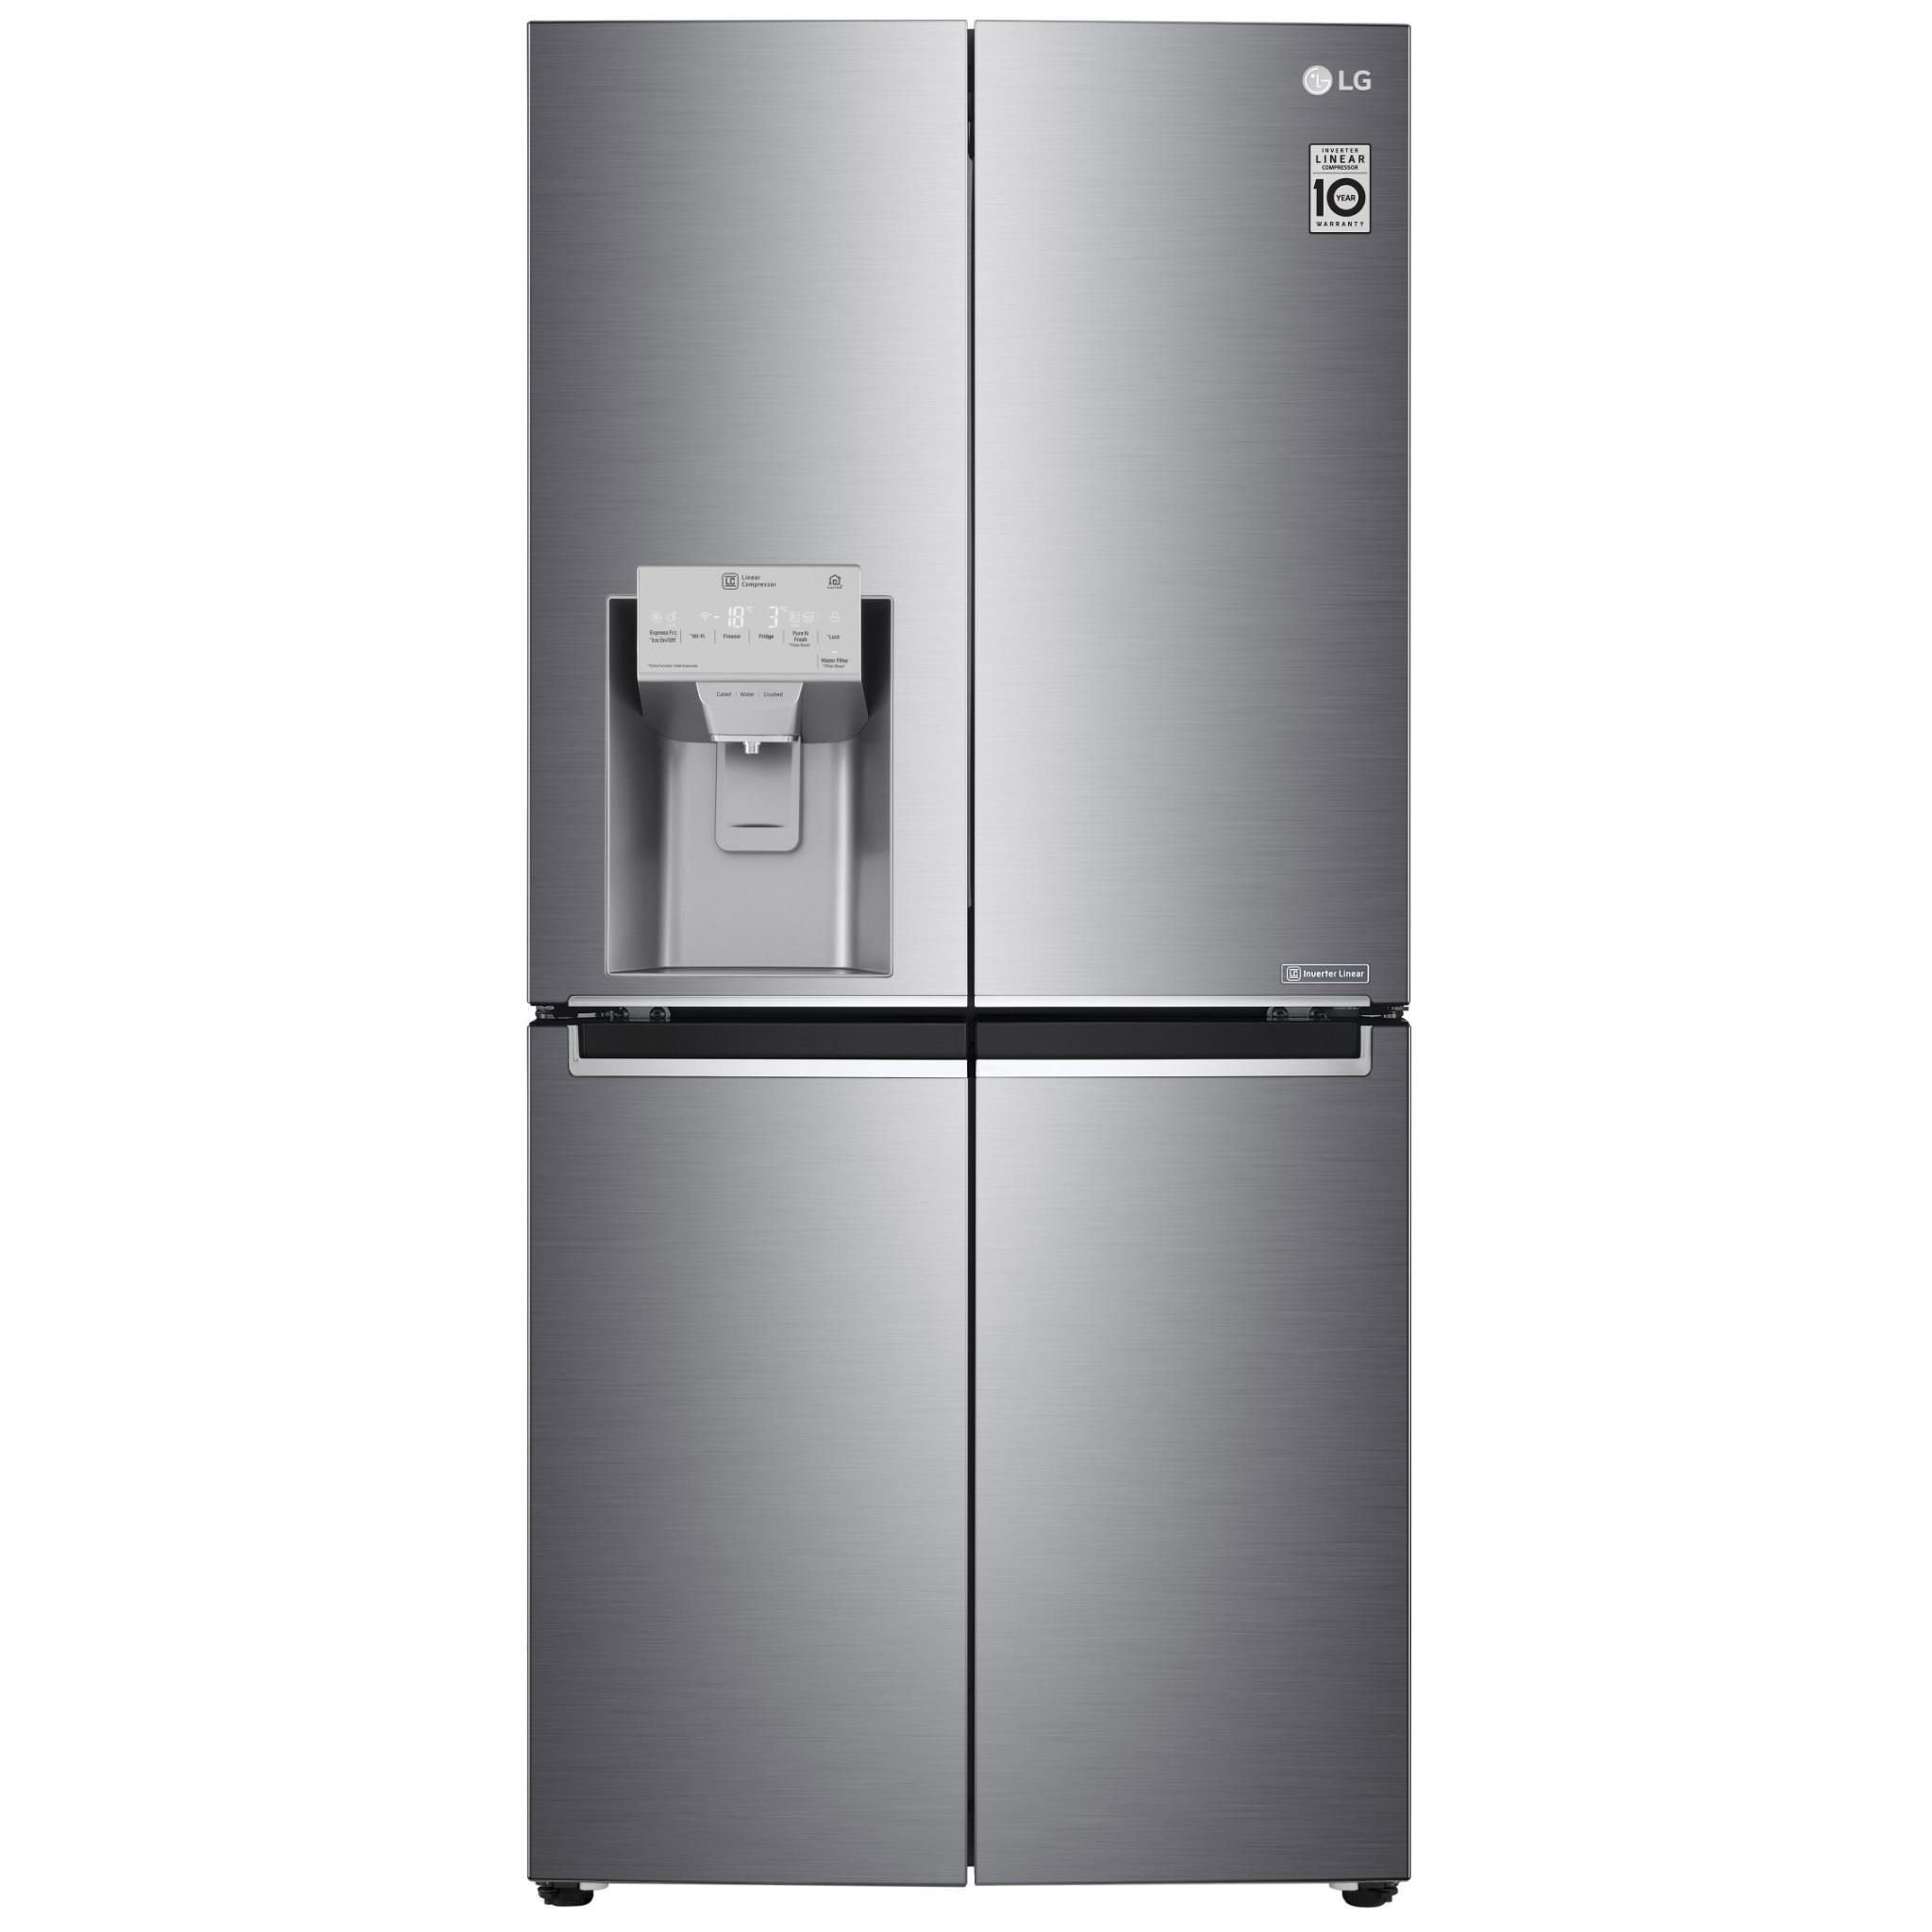 LG GF-L570PL 570L Slim French Door Fridge (Stainless Finish)